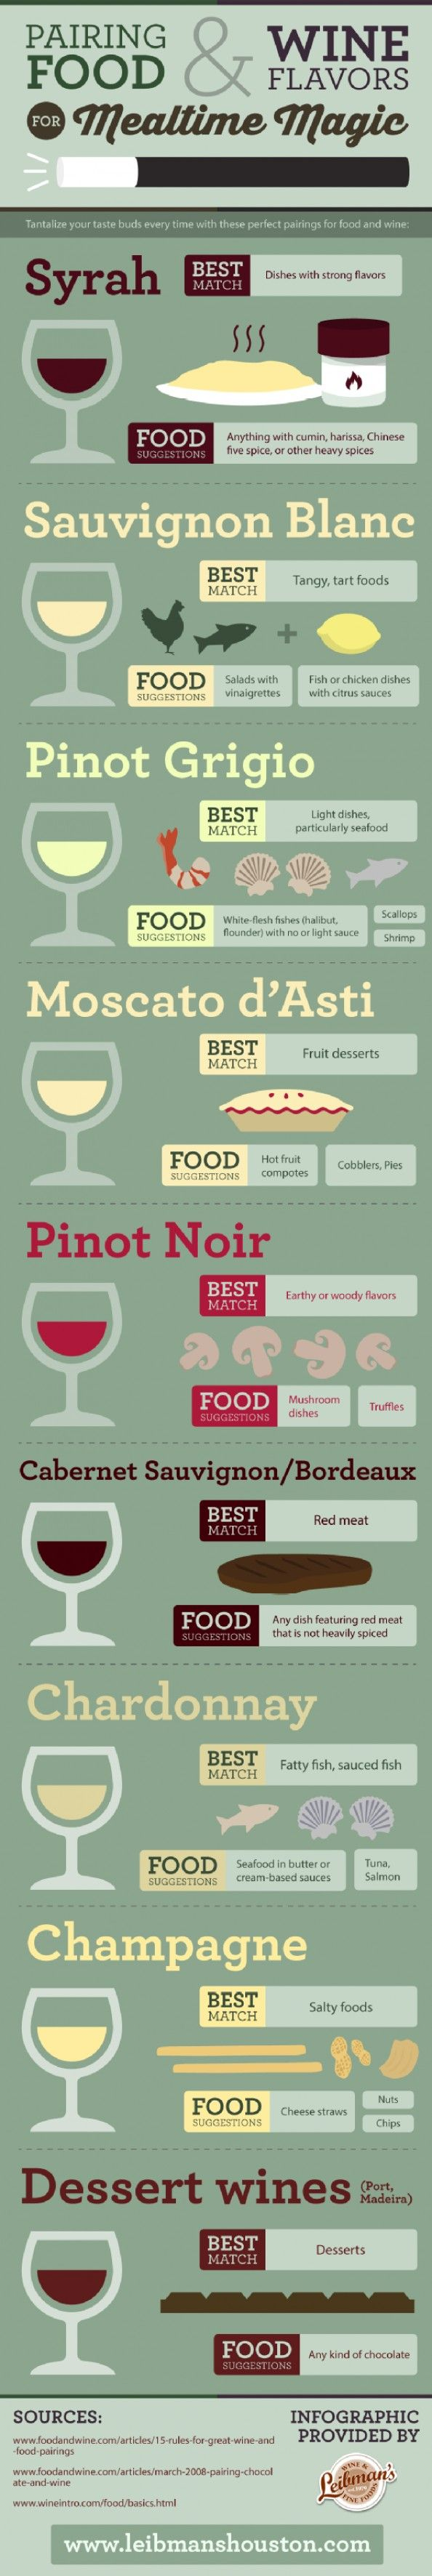 Pairing Food and Wine Flavors for Mealtime Magic Infographic